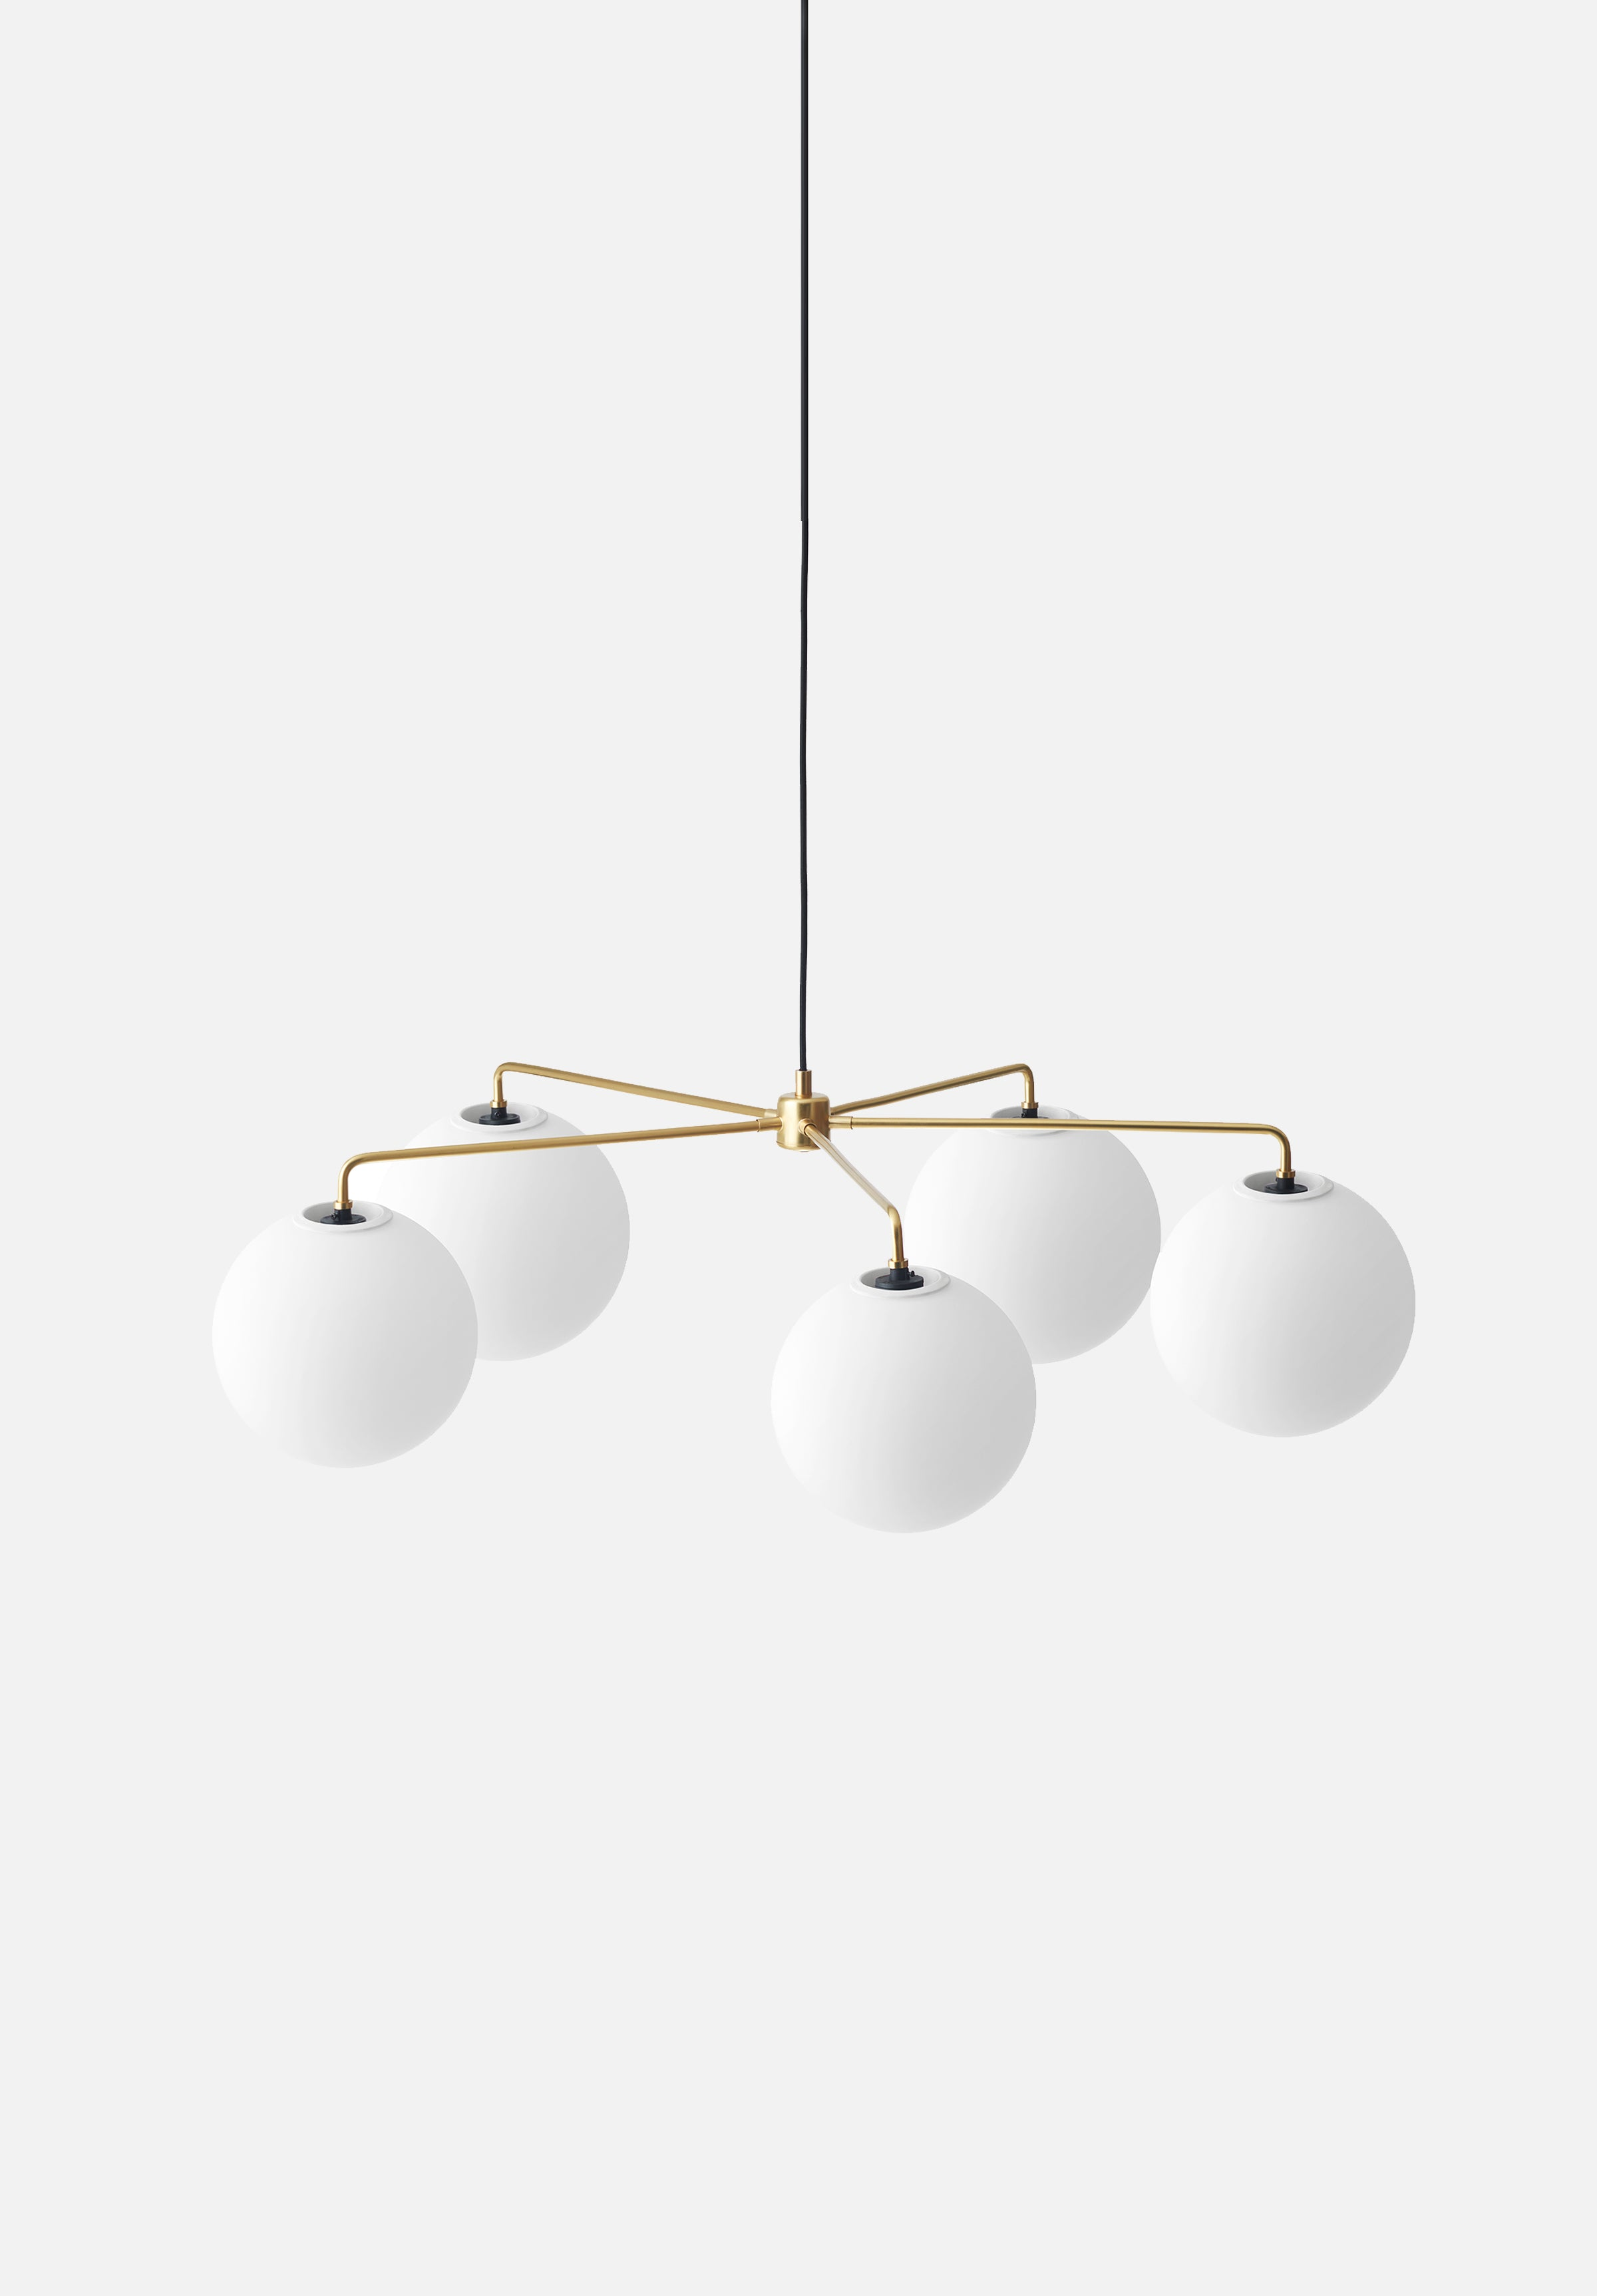 Tribeca Chambers Chandelier — 96cm-Søren Rose-Menu-Brass-No Bulbs-danish-interior-furniture-denmark-Average-design-toronto-canada